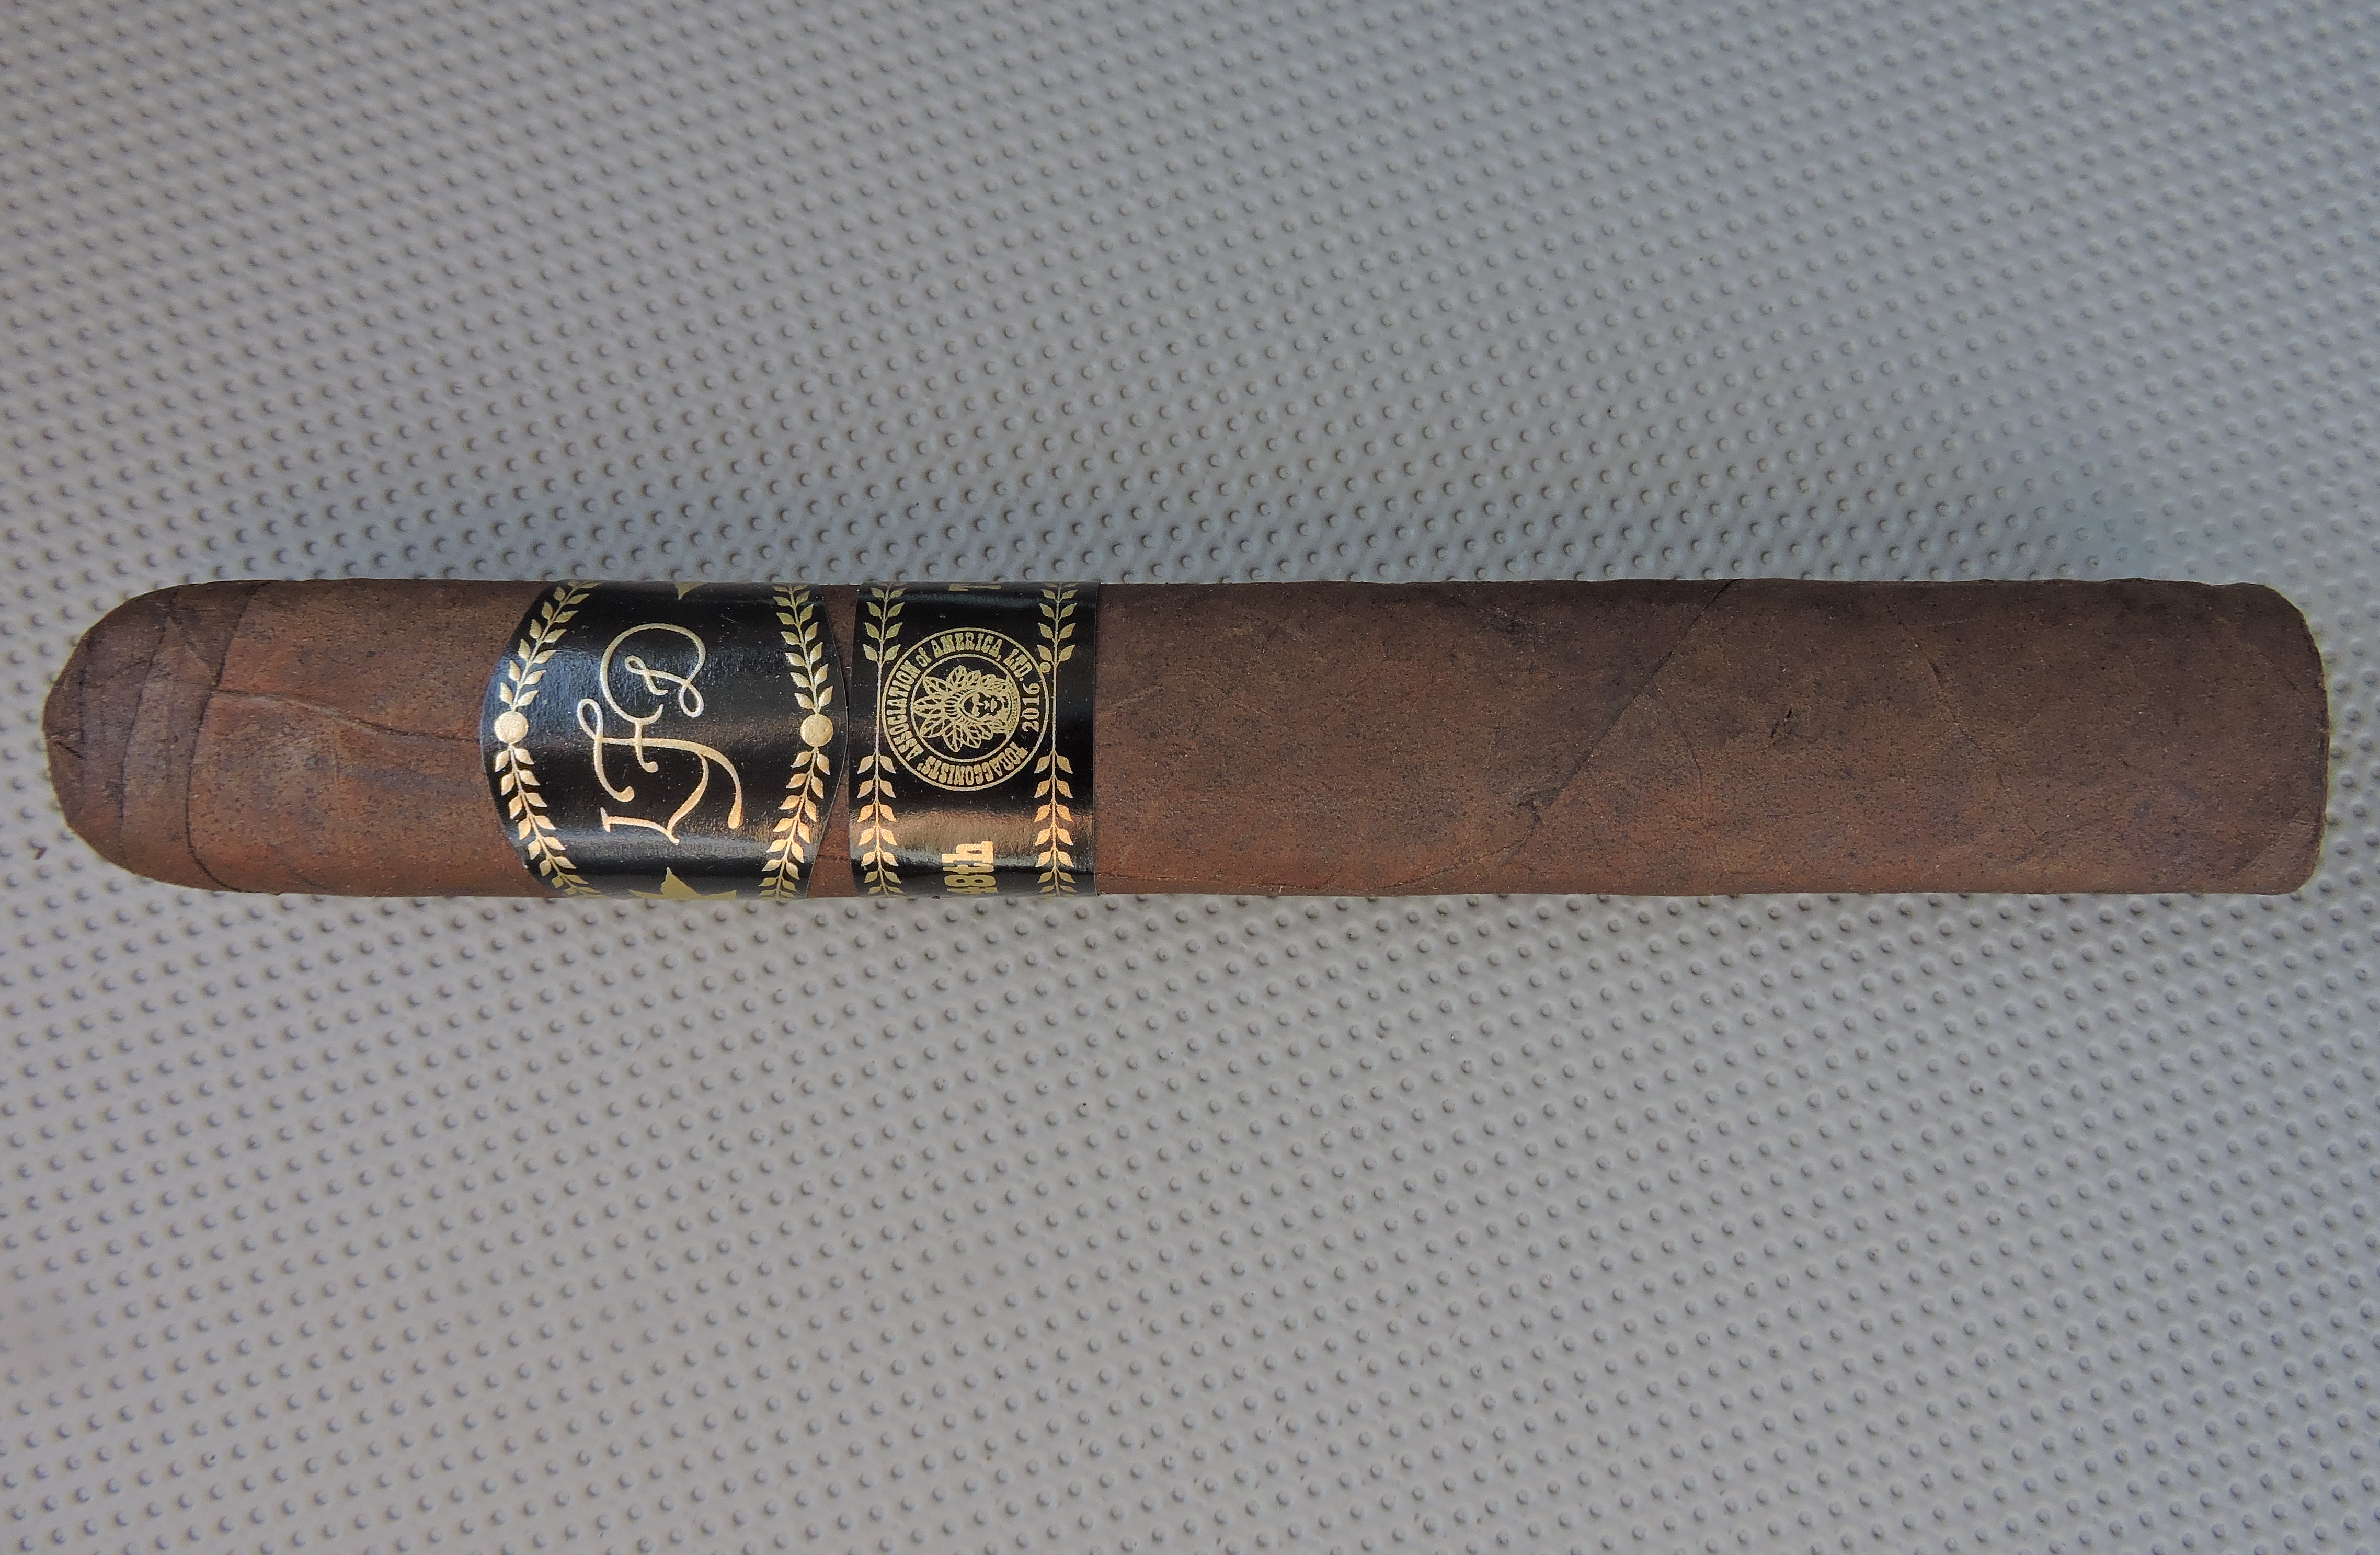 Cigar Review: La Flor Dominicana TAA 48 Celebration Limited Edition Maduro